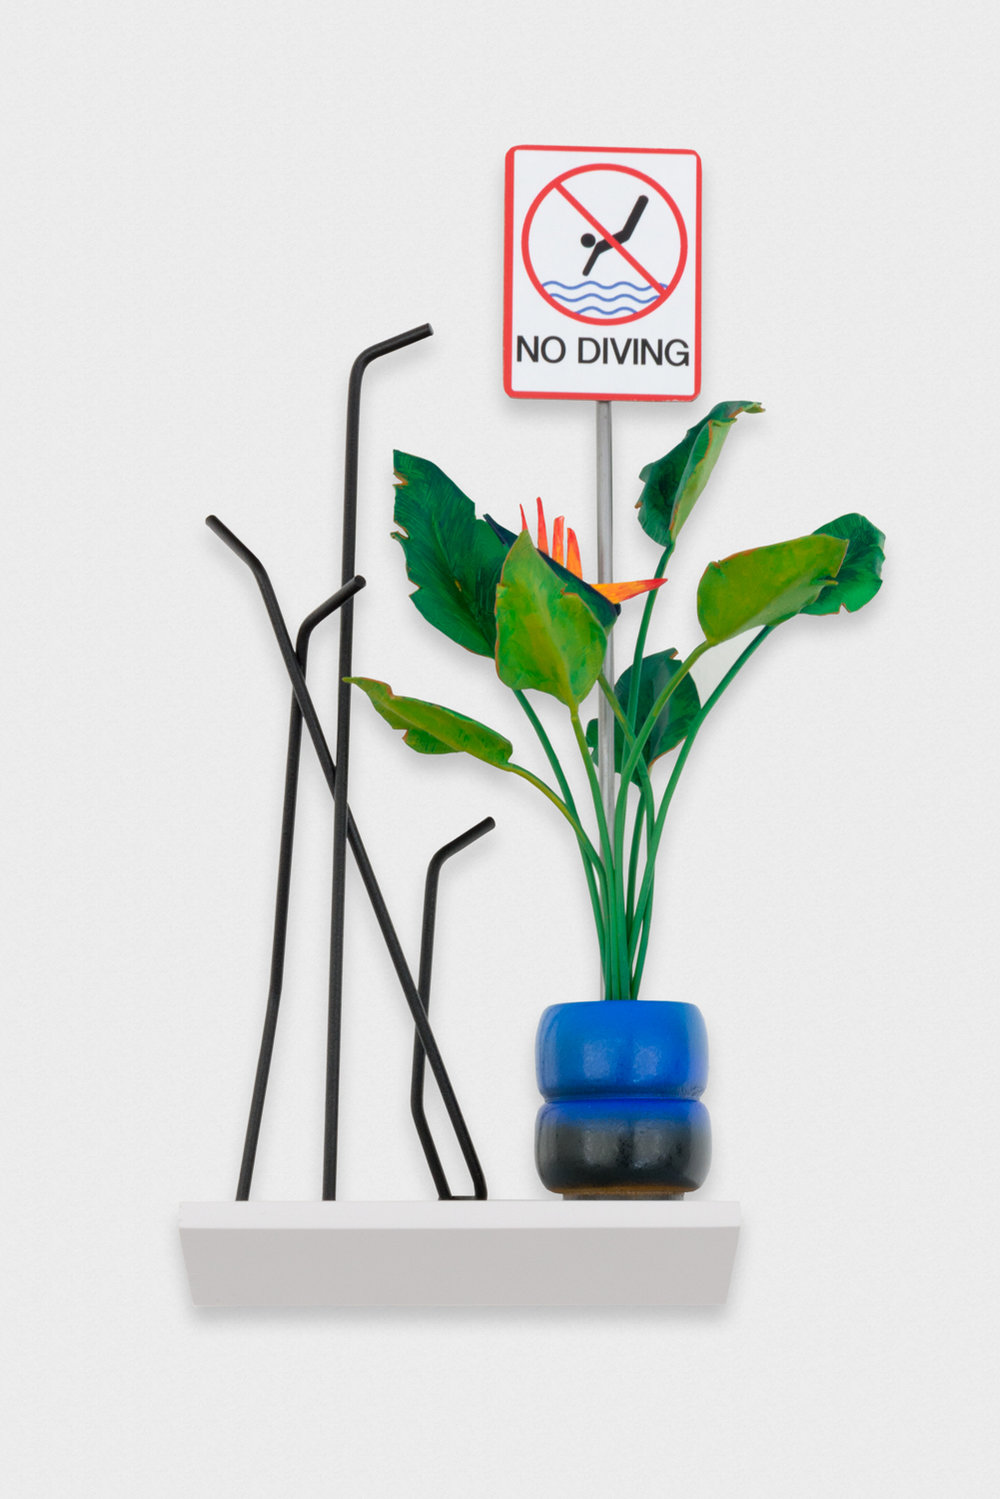 Chris Bradley  Paradise, A Bird with Modern Coat Rack (No Diving)  2017 Wood, steel, paint, stainless steel, laser jet print 9h x 5w x 3.5d in CB248